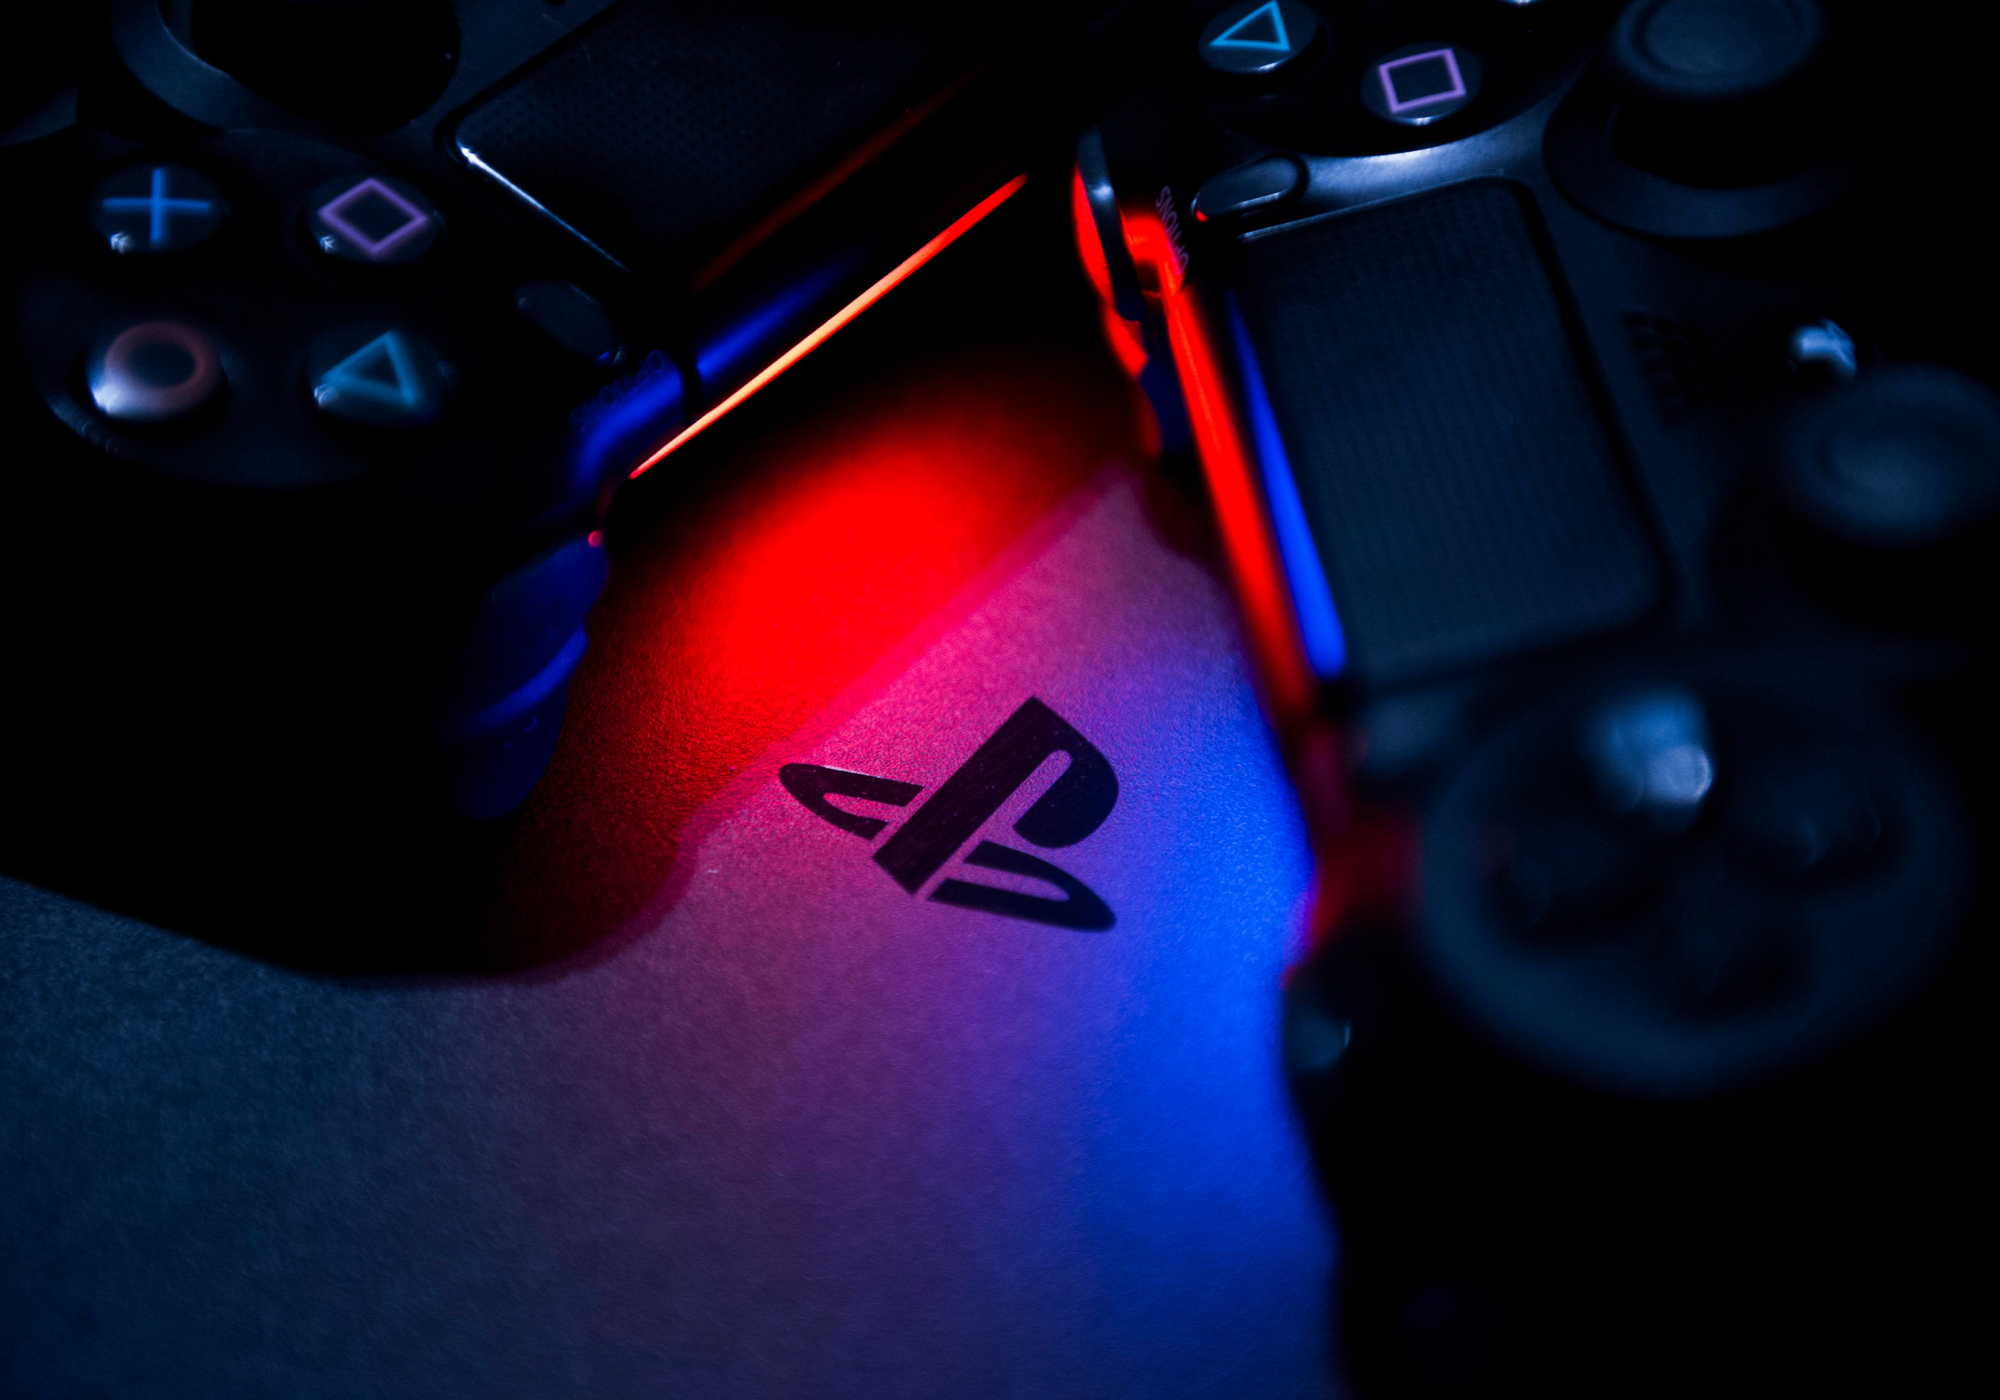 Sony Q1 results: Profit slips but gaming demand soars in lockdown